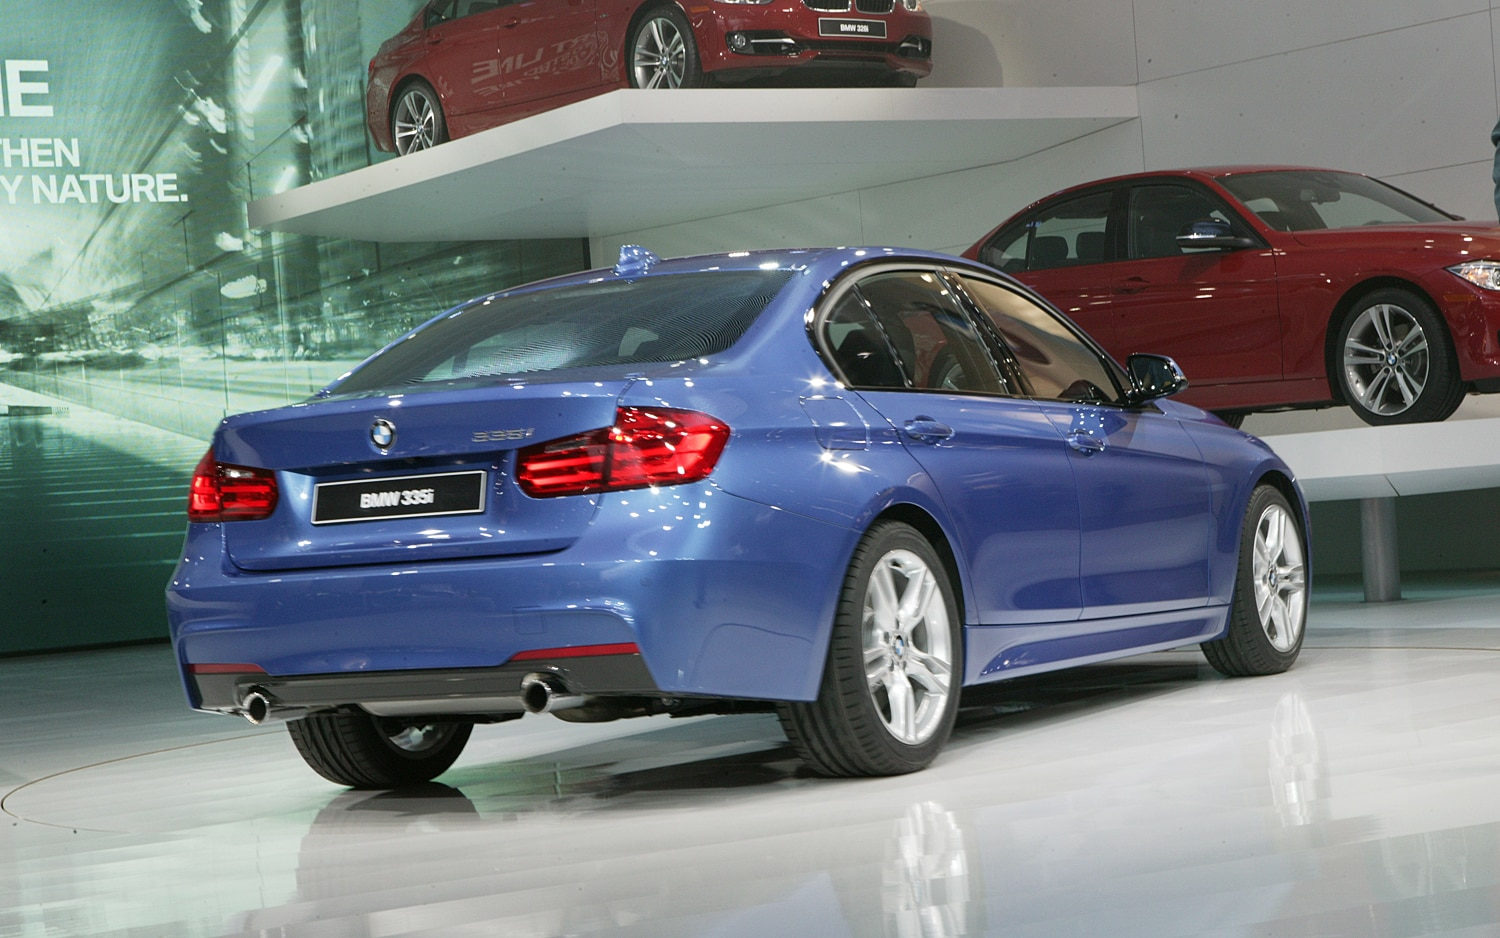 2012 BMW 3 Series Rear Three Quarters1